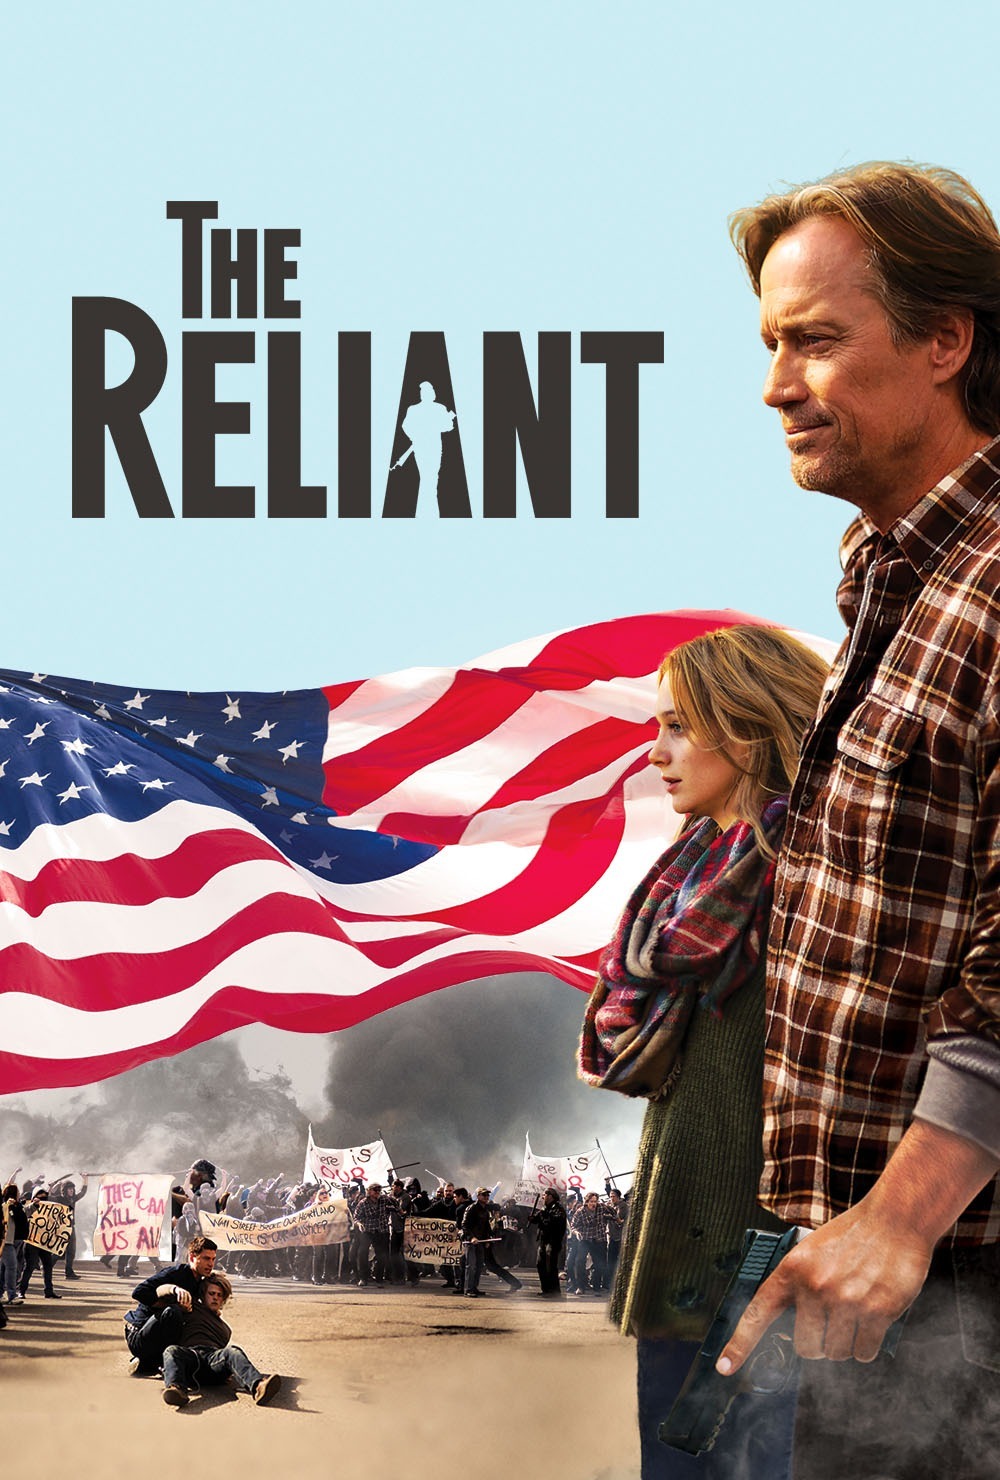 The Reliant movie poster, written and produced by BEL friend Dr. Patrick Johnston